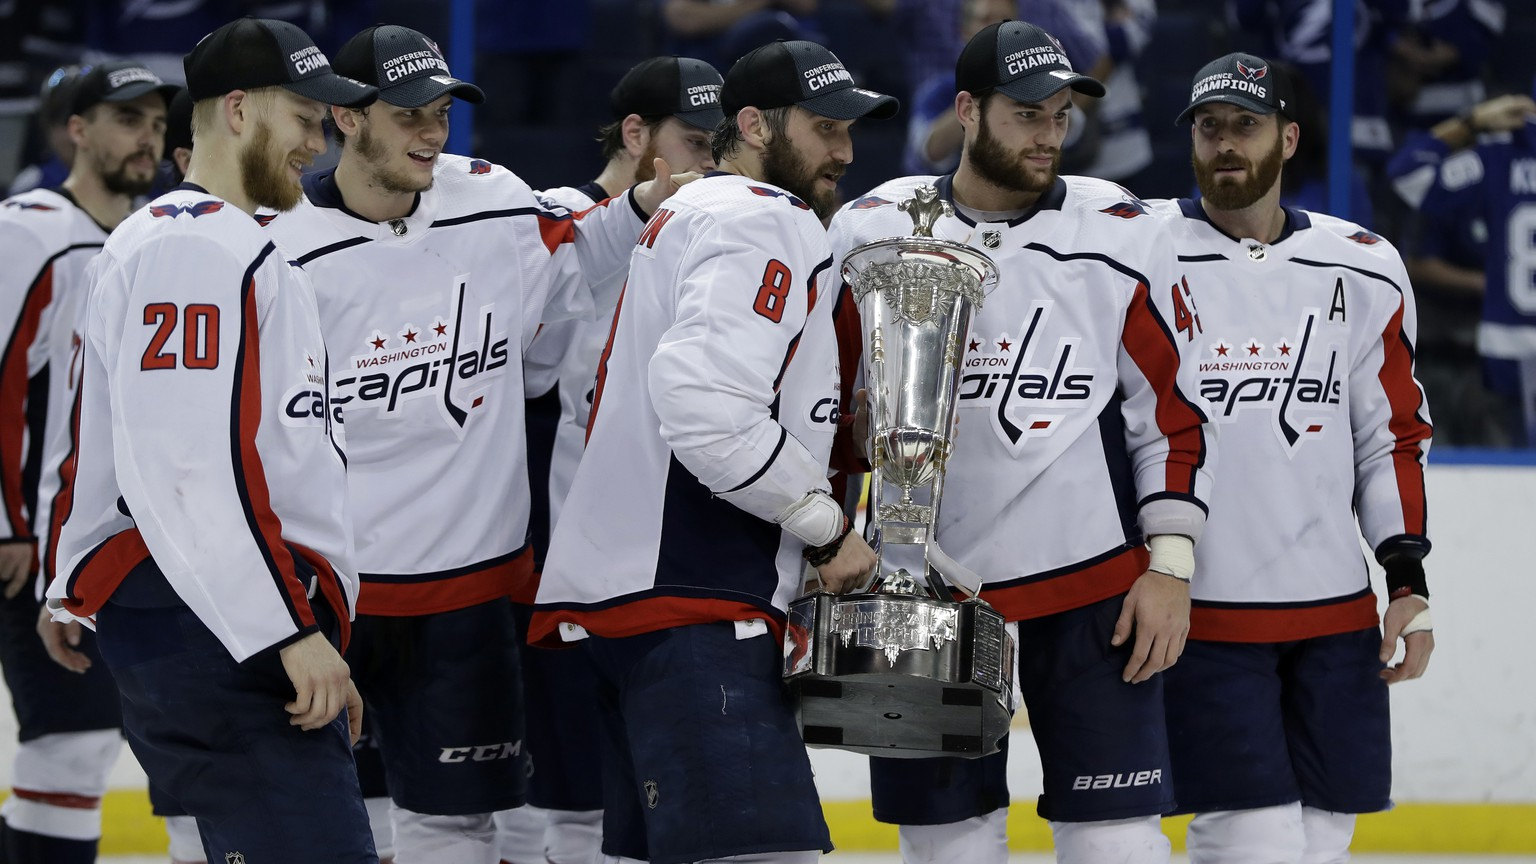 Washington Capitals left wing Alex Ovechkin (8) holds the Prince of Wales trophy with teammates after the Capitals defeated the Tampa Bay Lightning 4-0 during Game 7 of the NHL Eastern Conference finals hockey playoff series Wednesday, May 23, 2018, in Tampa, Fla. (AP Photo/Chris O'Meara)